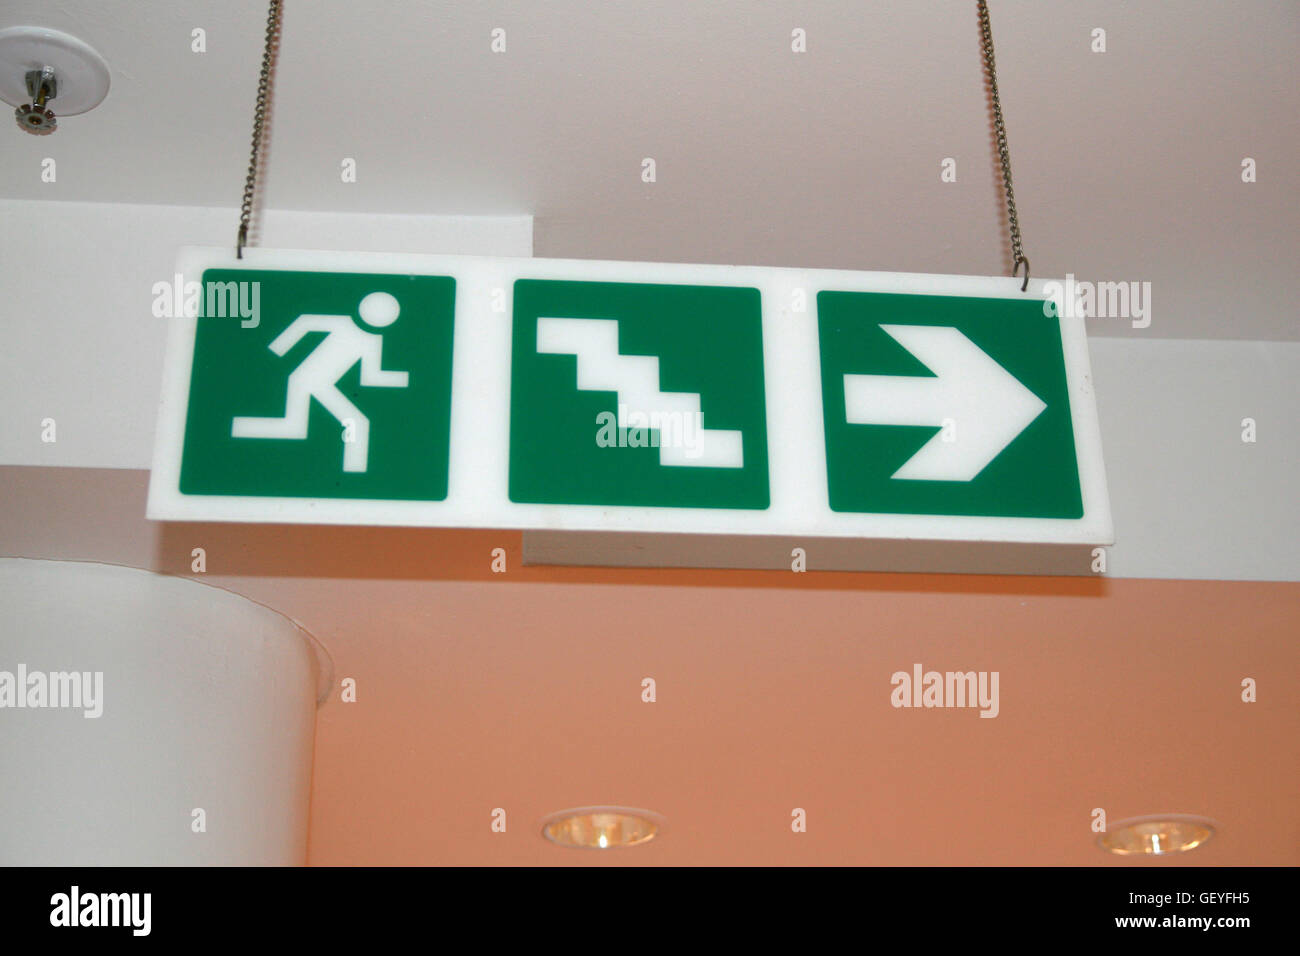 Emergency exit sign museum africa johannesburg south africa stock emergency exit sign museum africa johannesburg south africa buycottarizona Images